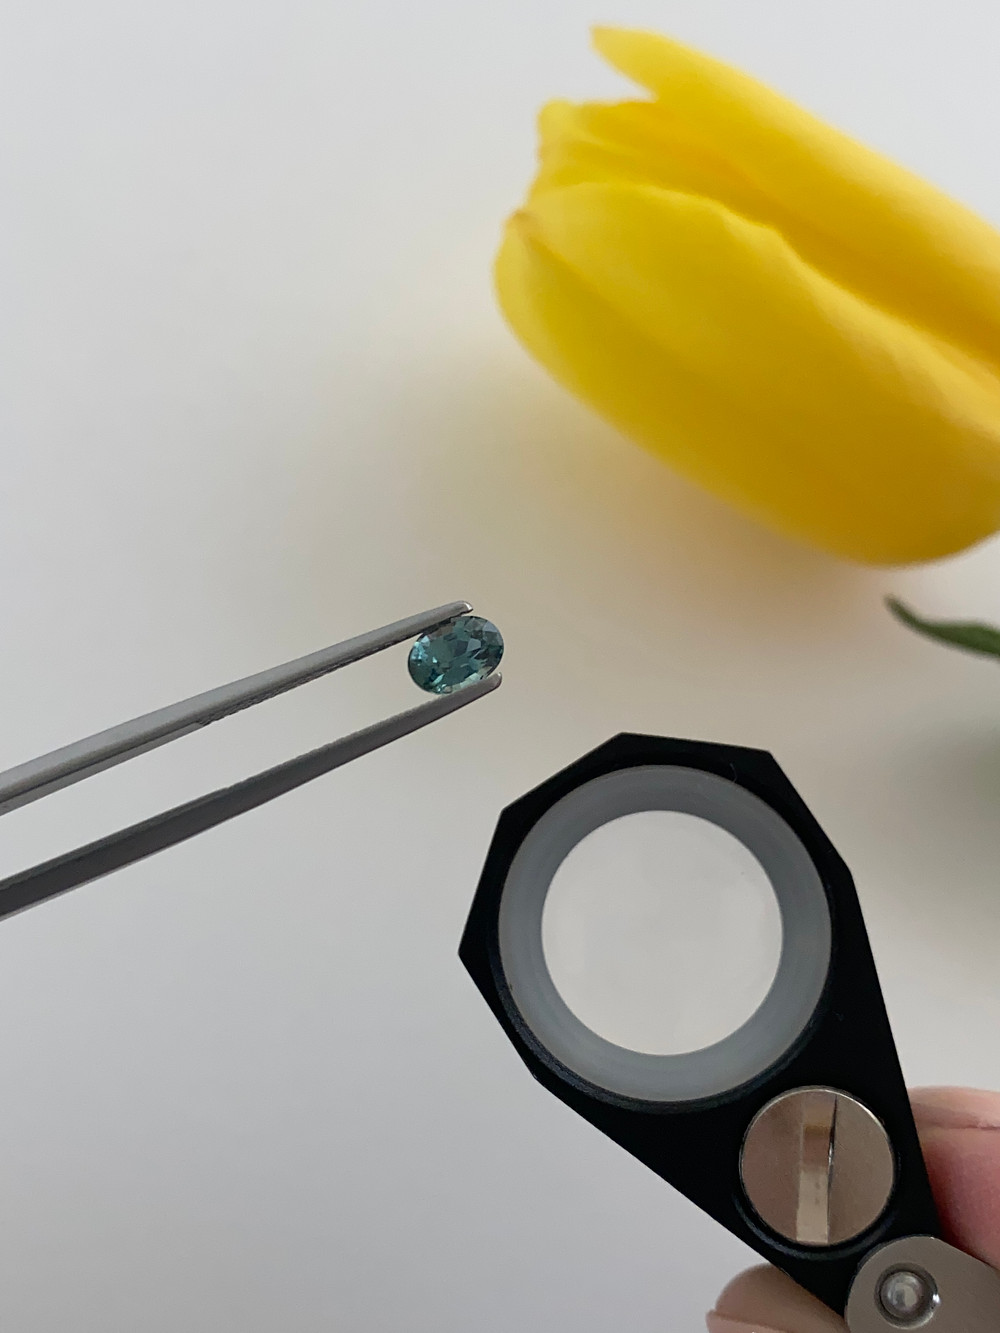 loose oval blue green teal sapphire held in tweezers, hand holding a loupe, next to a yellow tulip, on a white background